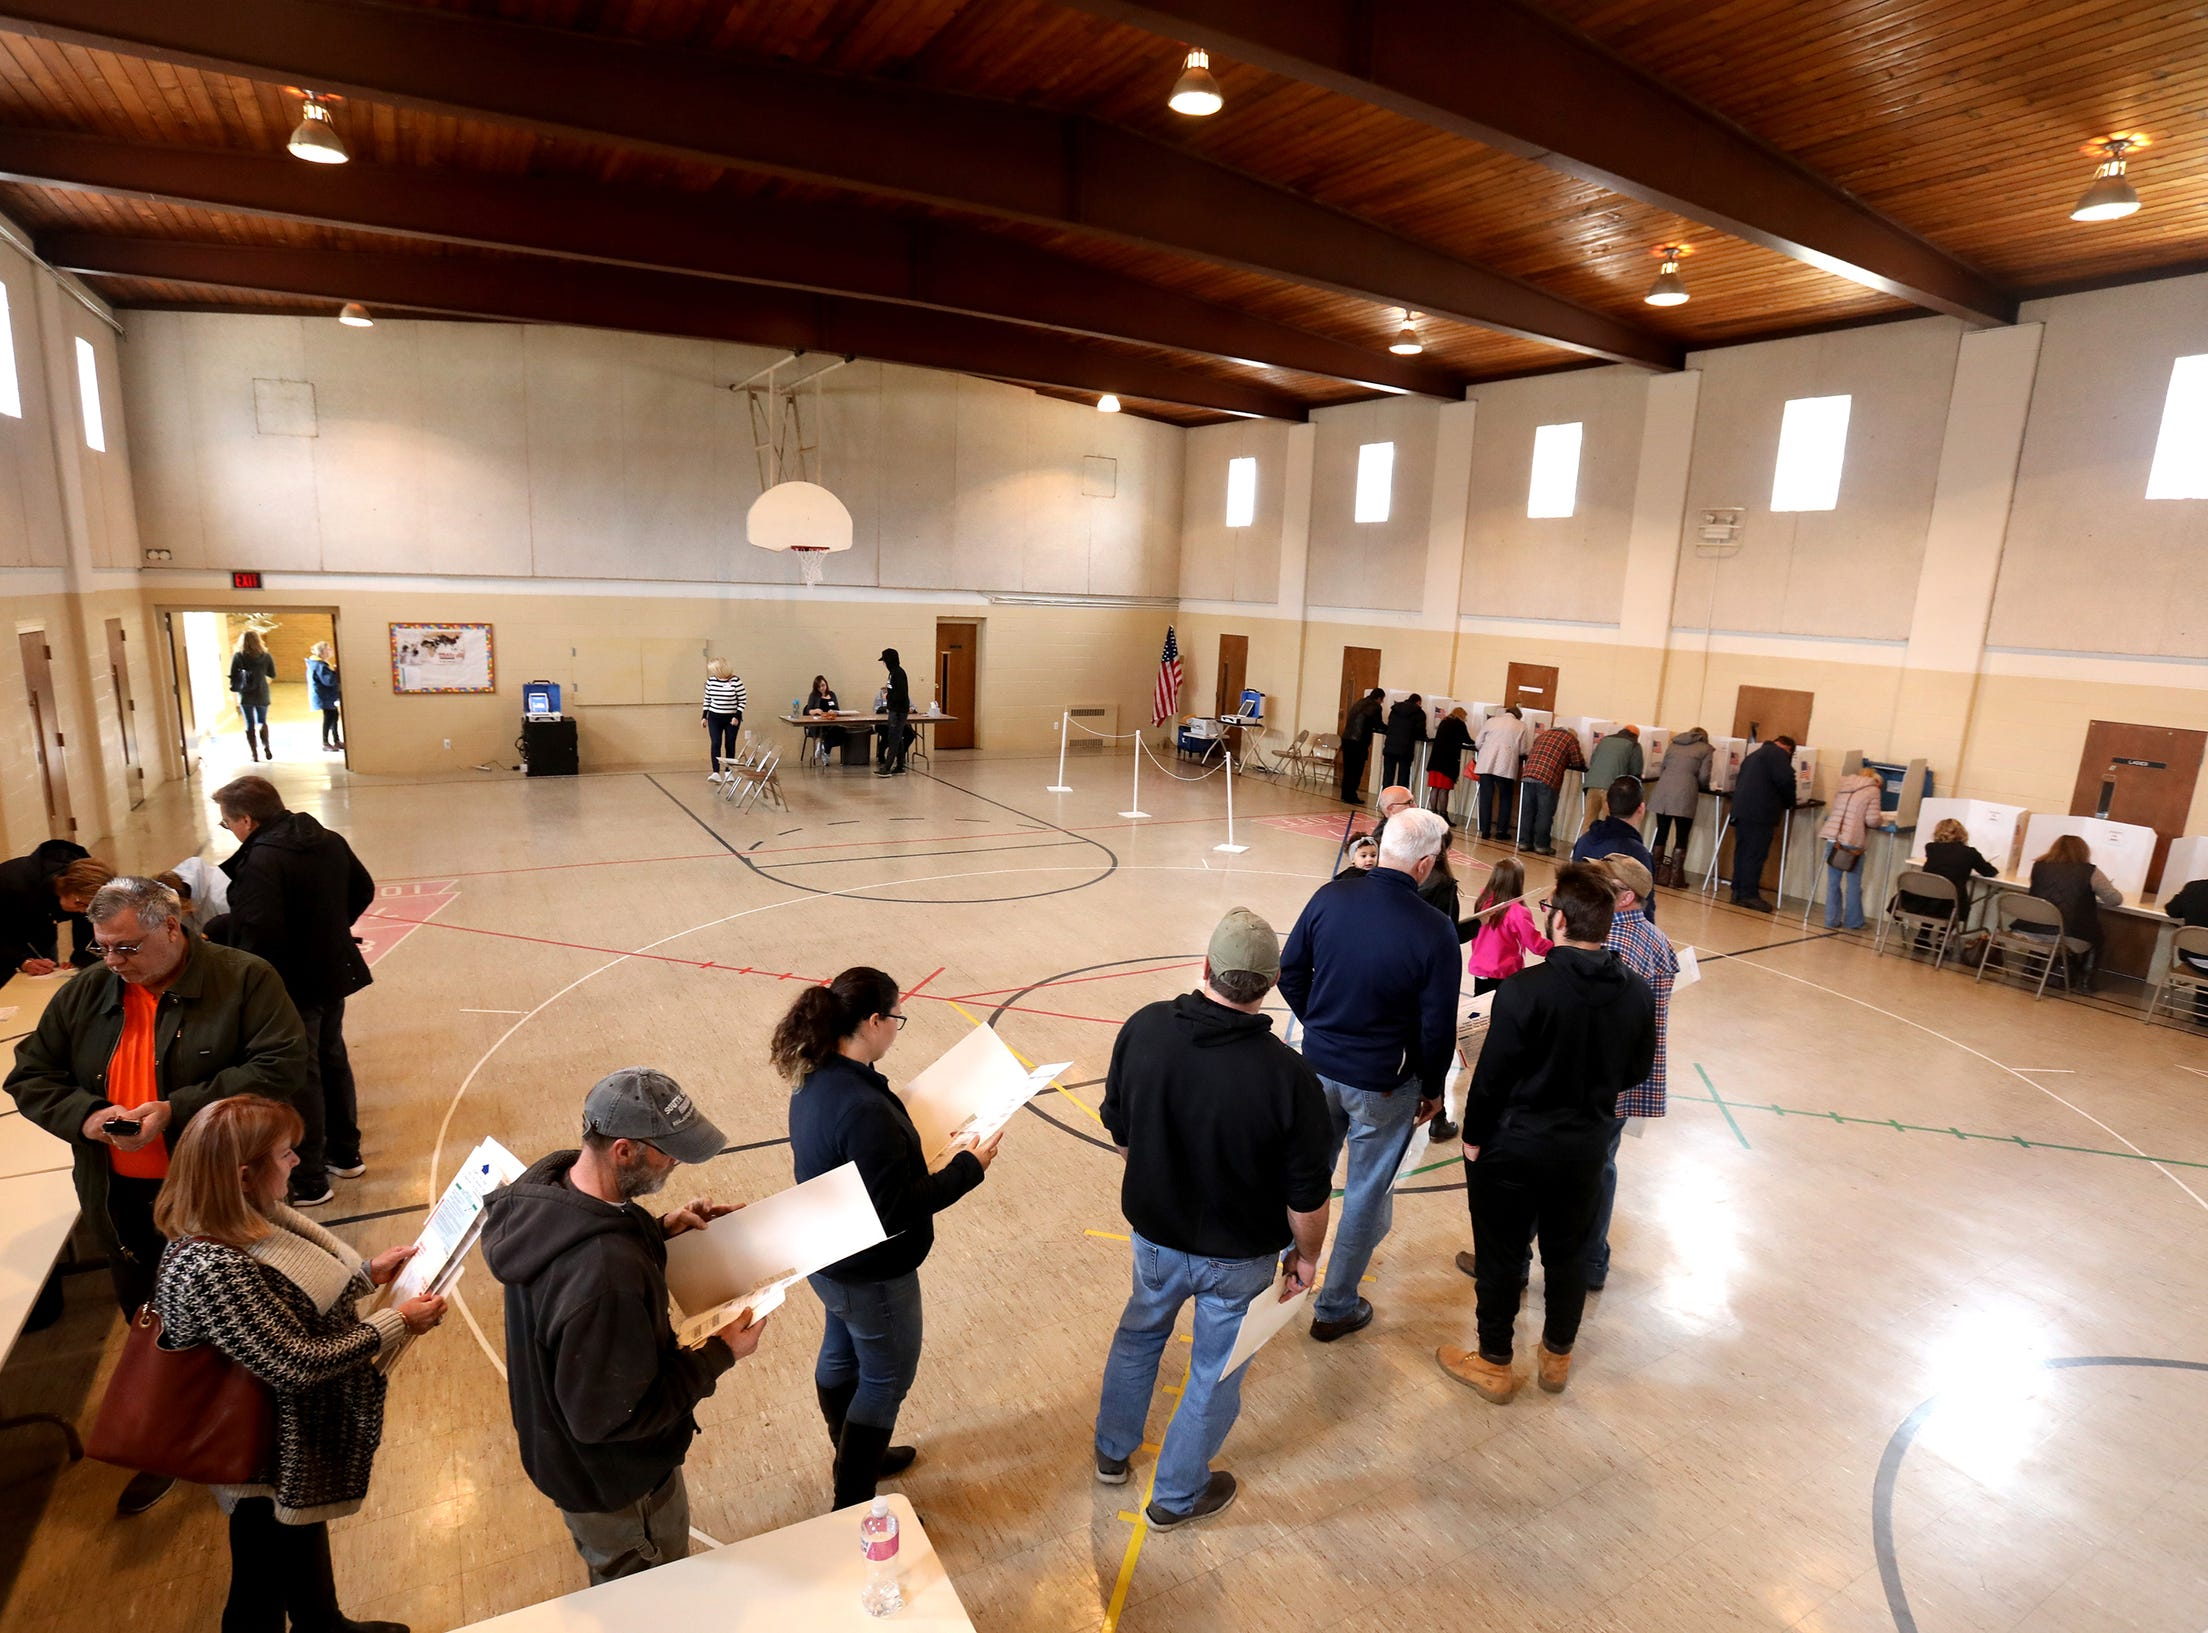 Voters stand in line as they wait to fill out their ballots at Union Lake Baptist in Commerce Township, Michigan on November 6, 2018.